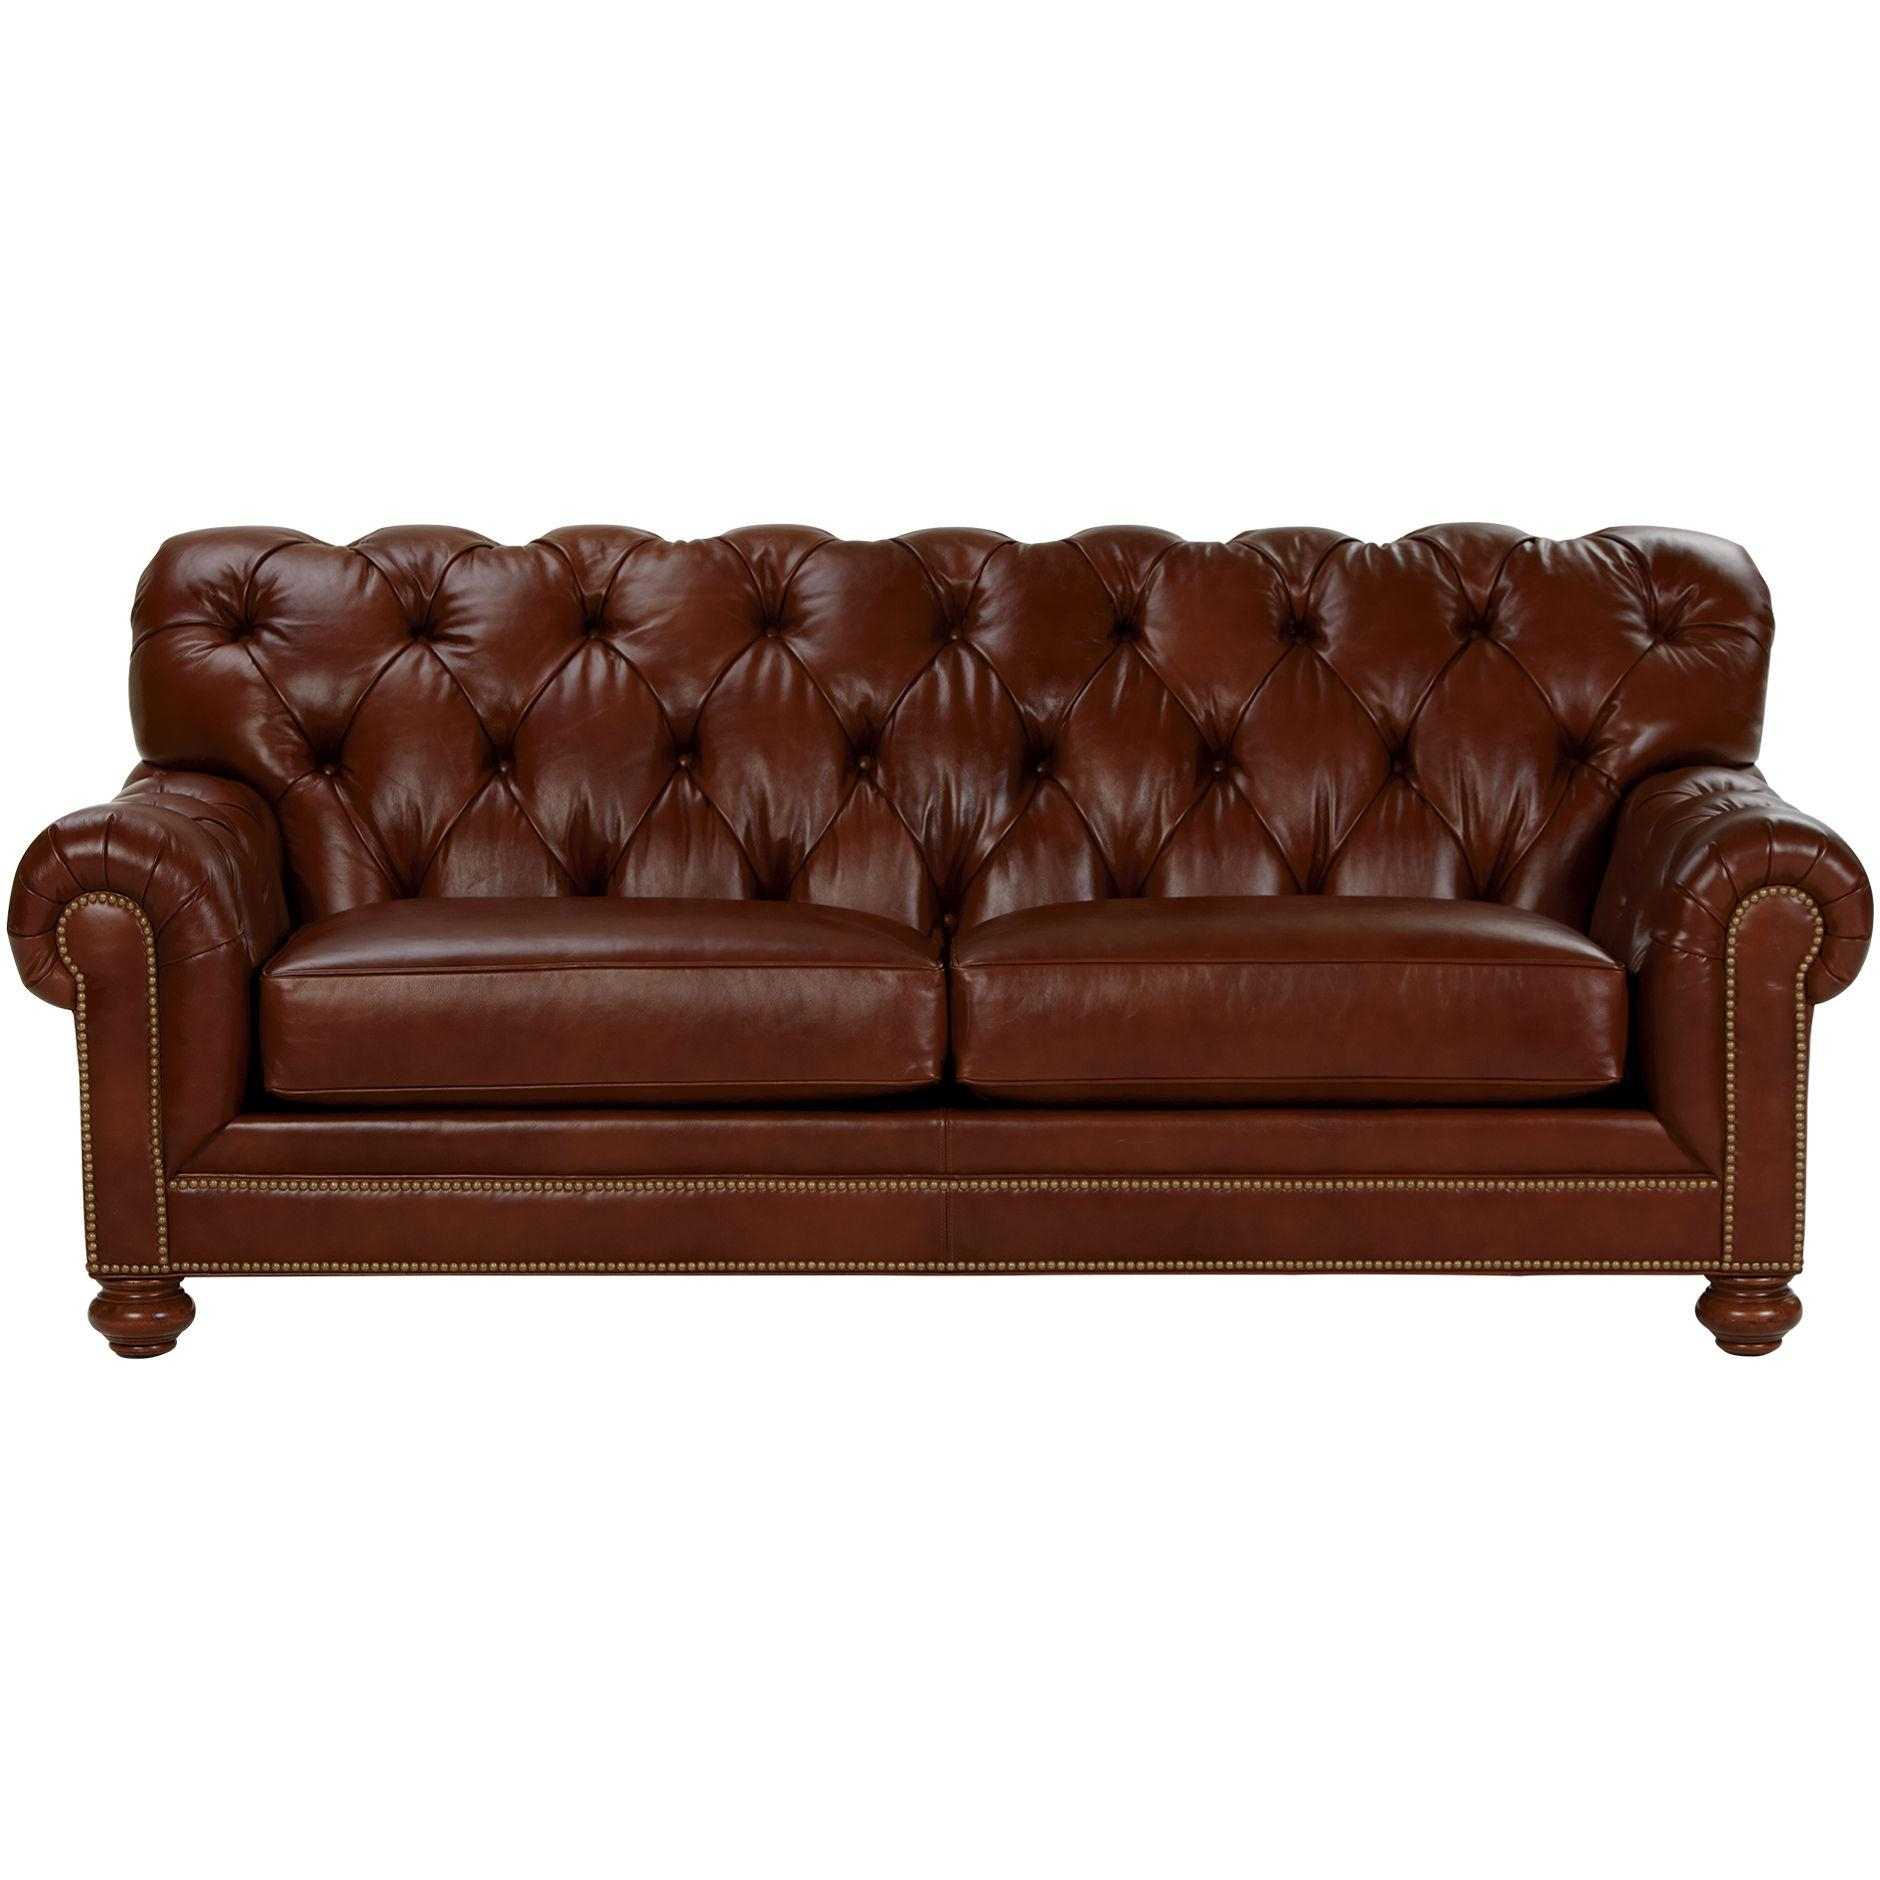 Chadwick Leather Sofa, Old English/ Saddle – Ethan Allen Us | Sofa Inside Chadwick Sofas (Image 5 of 20)